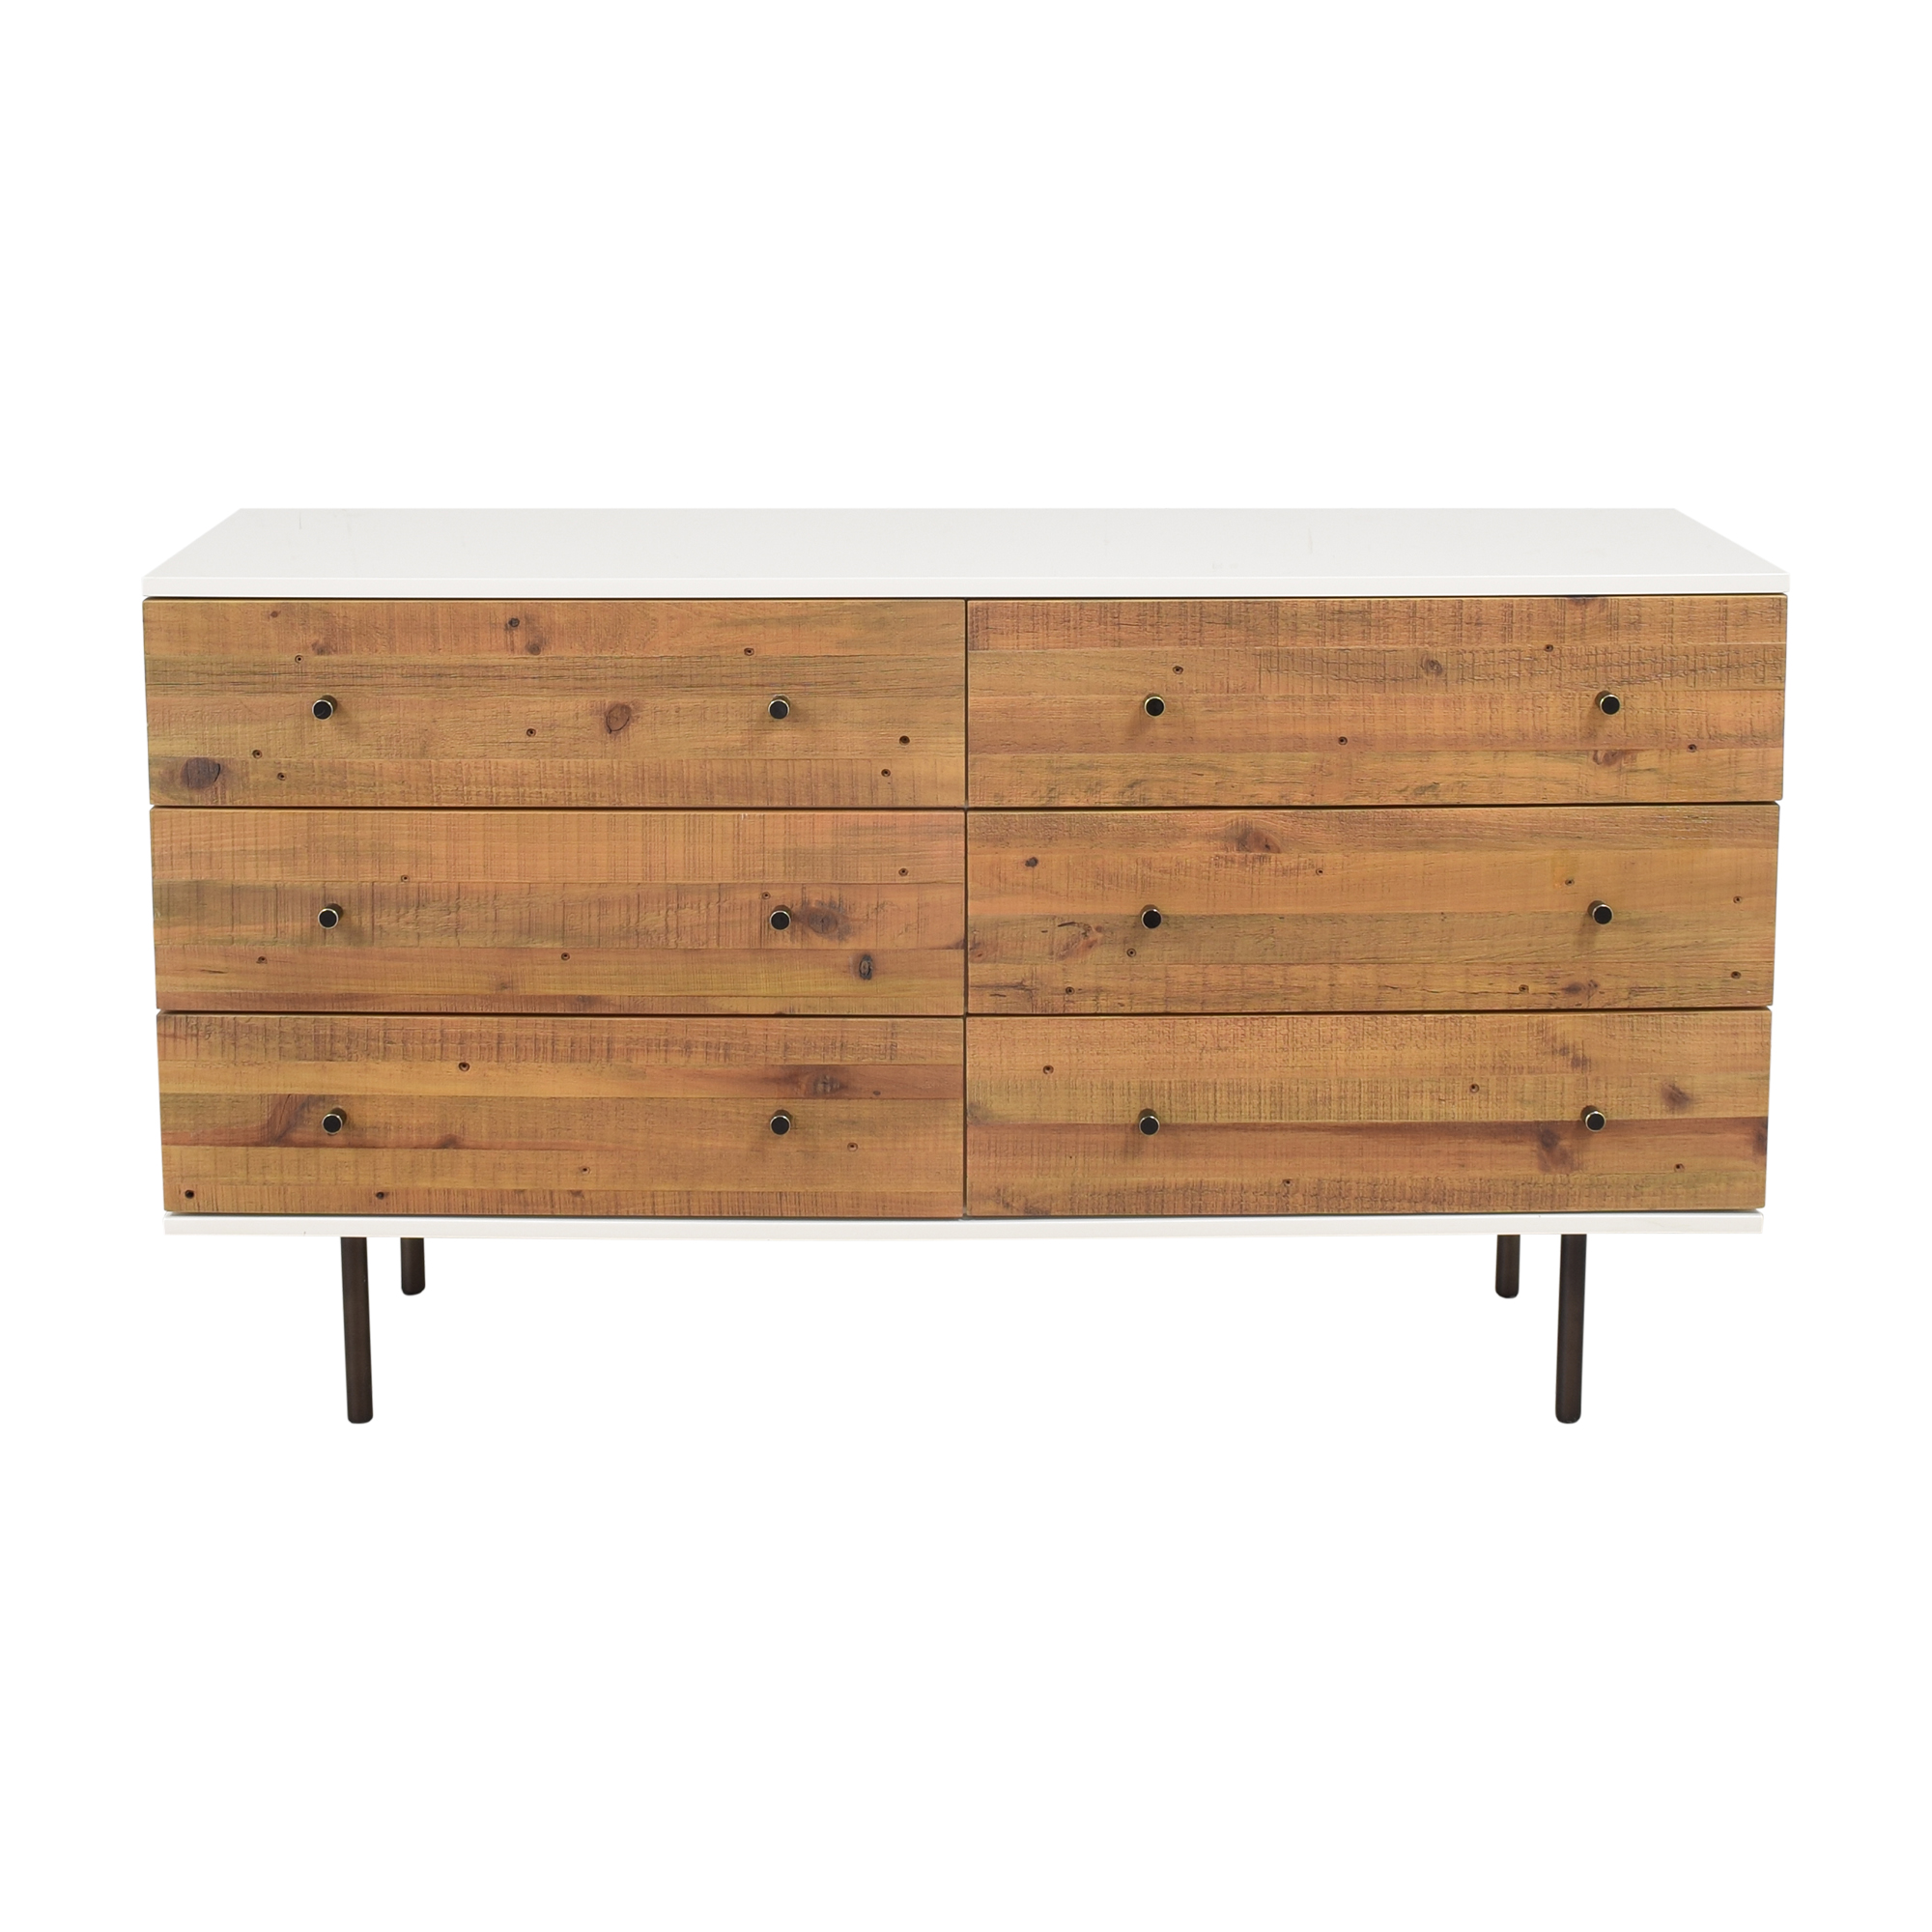 West Elm West Elm Emmerson Reclaimed Six Drawer Dresser price